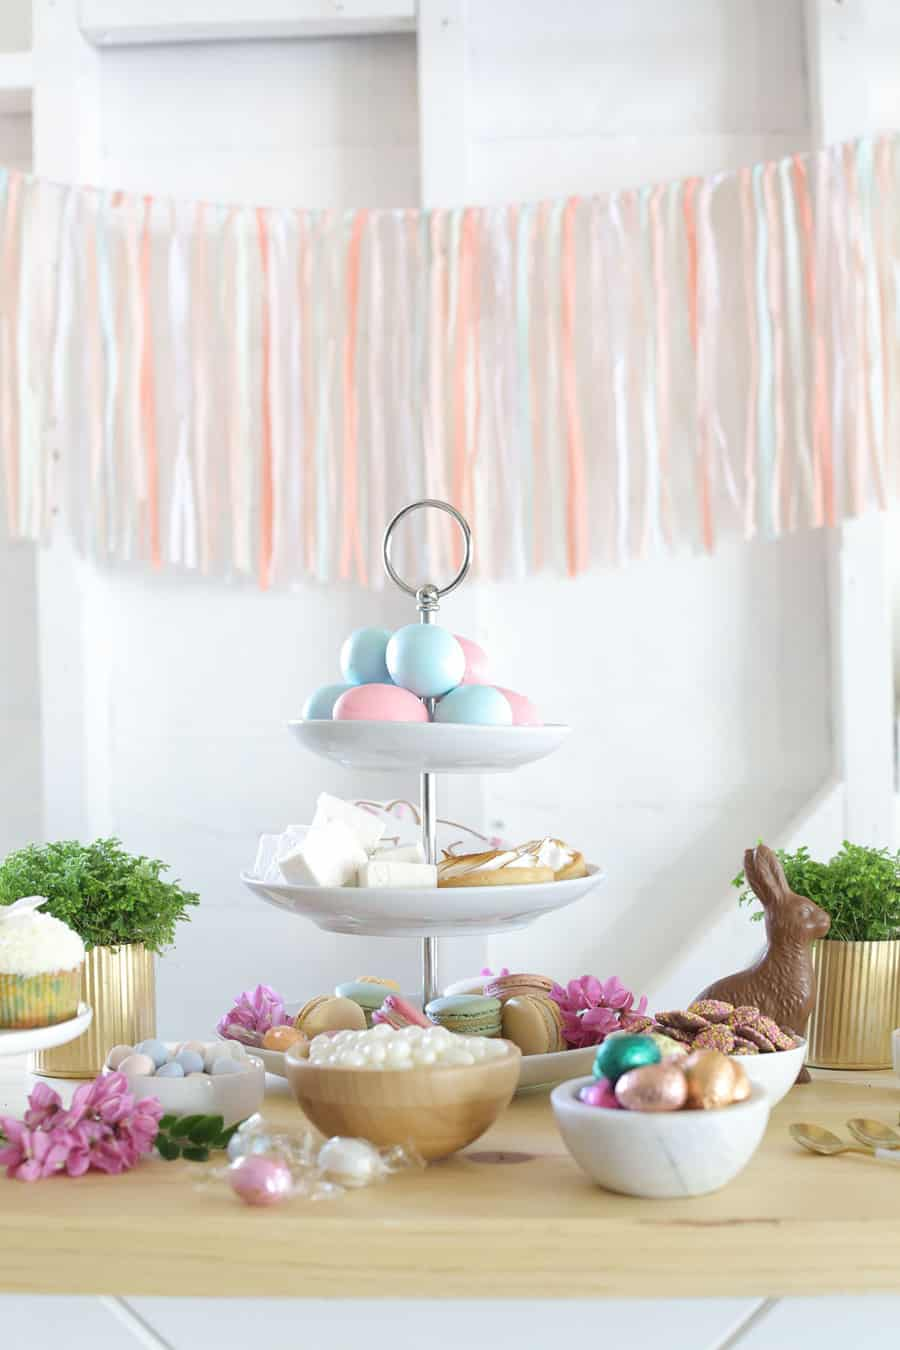 Easter dessert ideas on a table with chocolate, eggs, marshmallows.